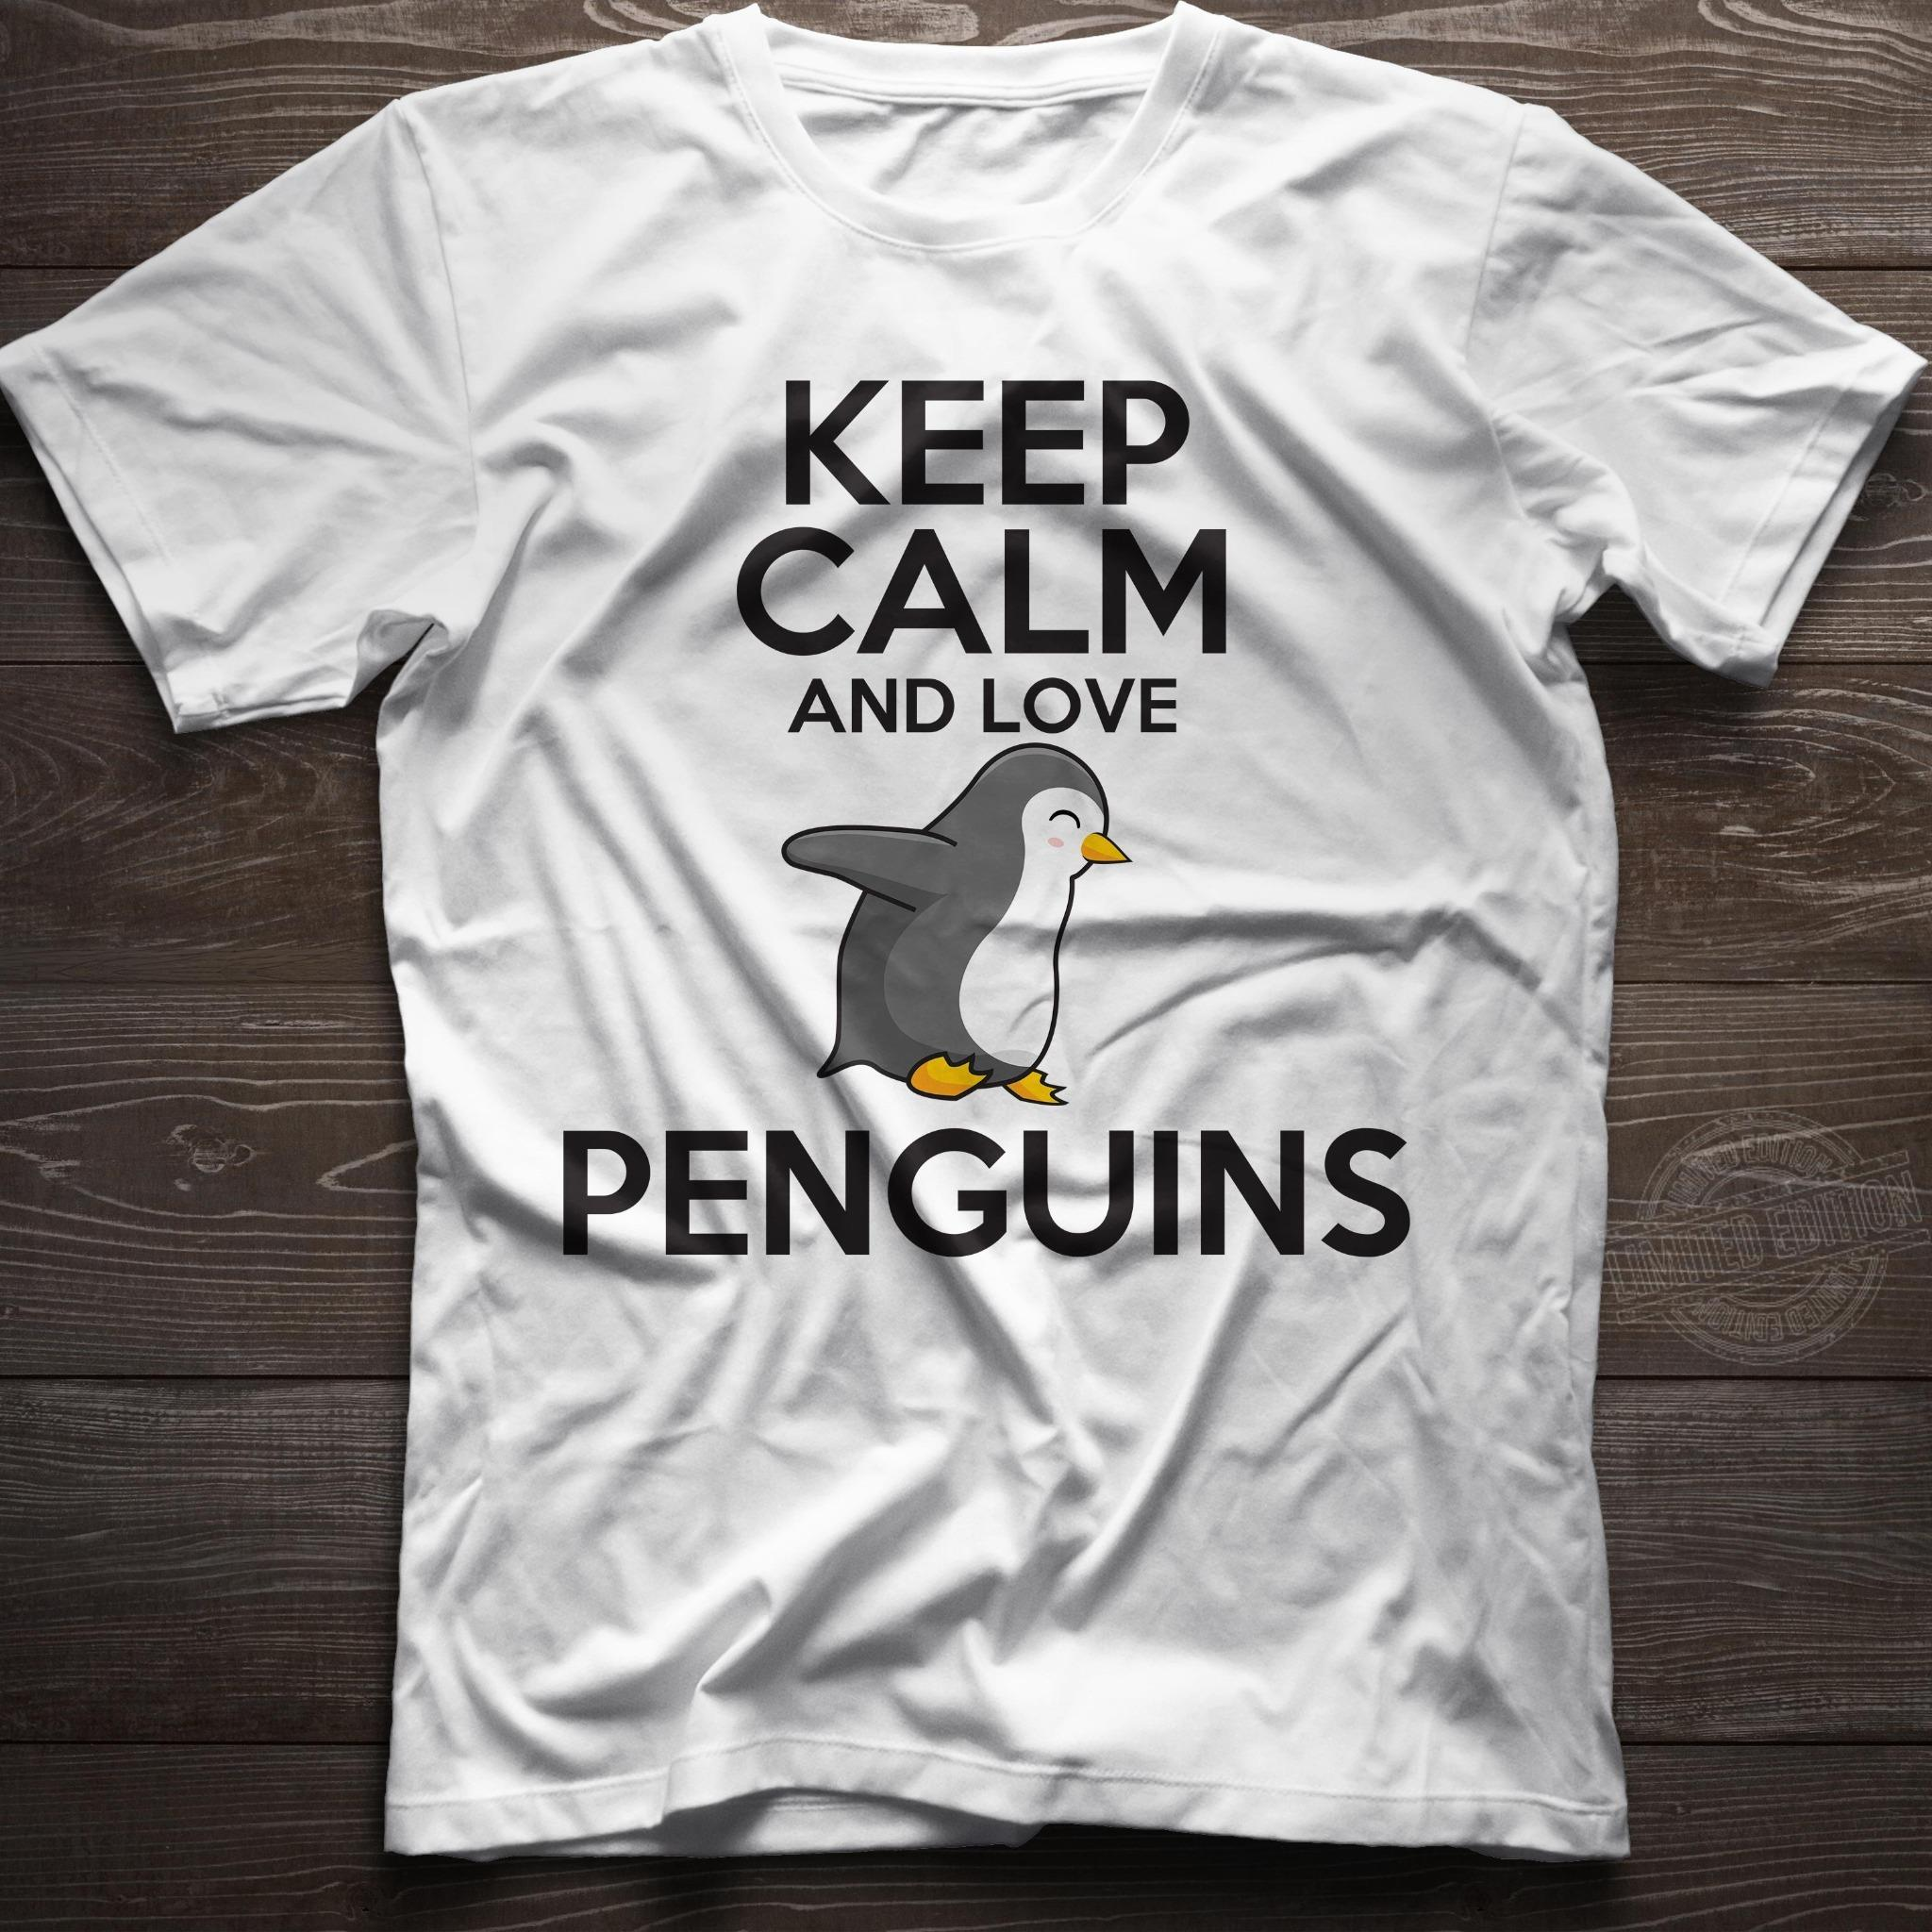 Keep calm and love penguins Shirt